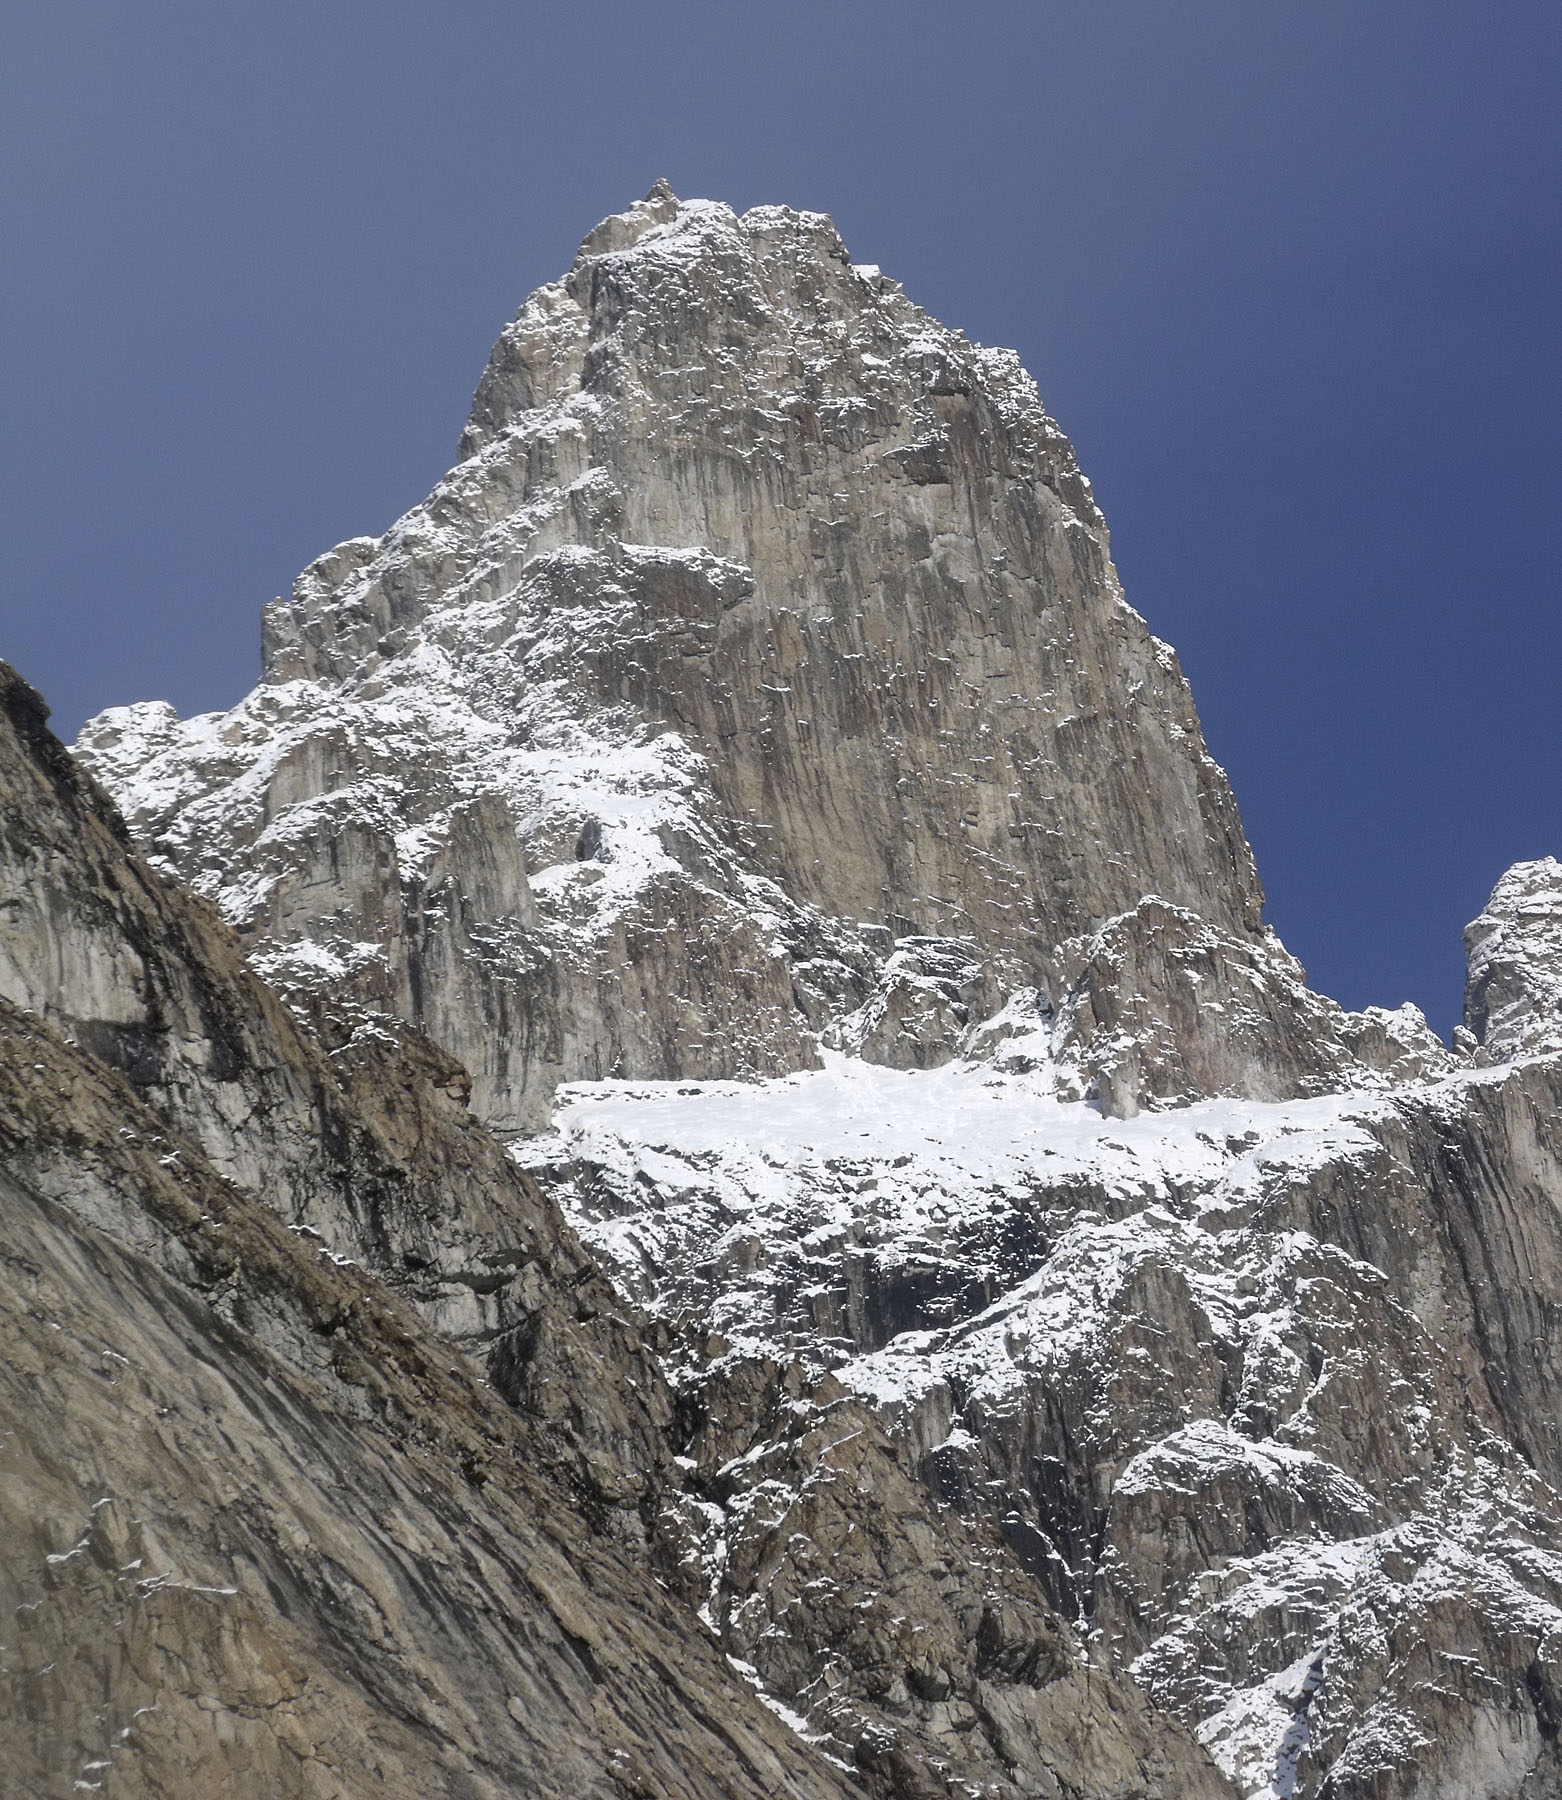 The unclimbed rock summit east of base camp attempted to 1,600m by Phillips, Porter, and Southgate.